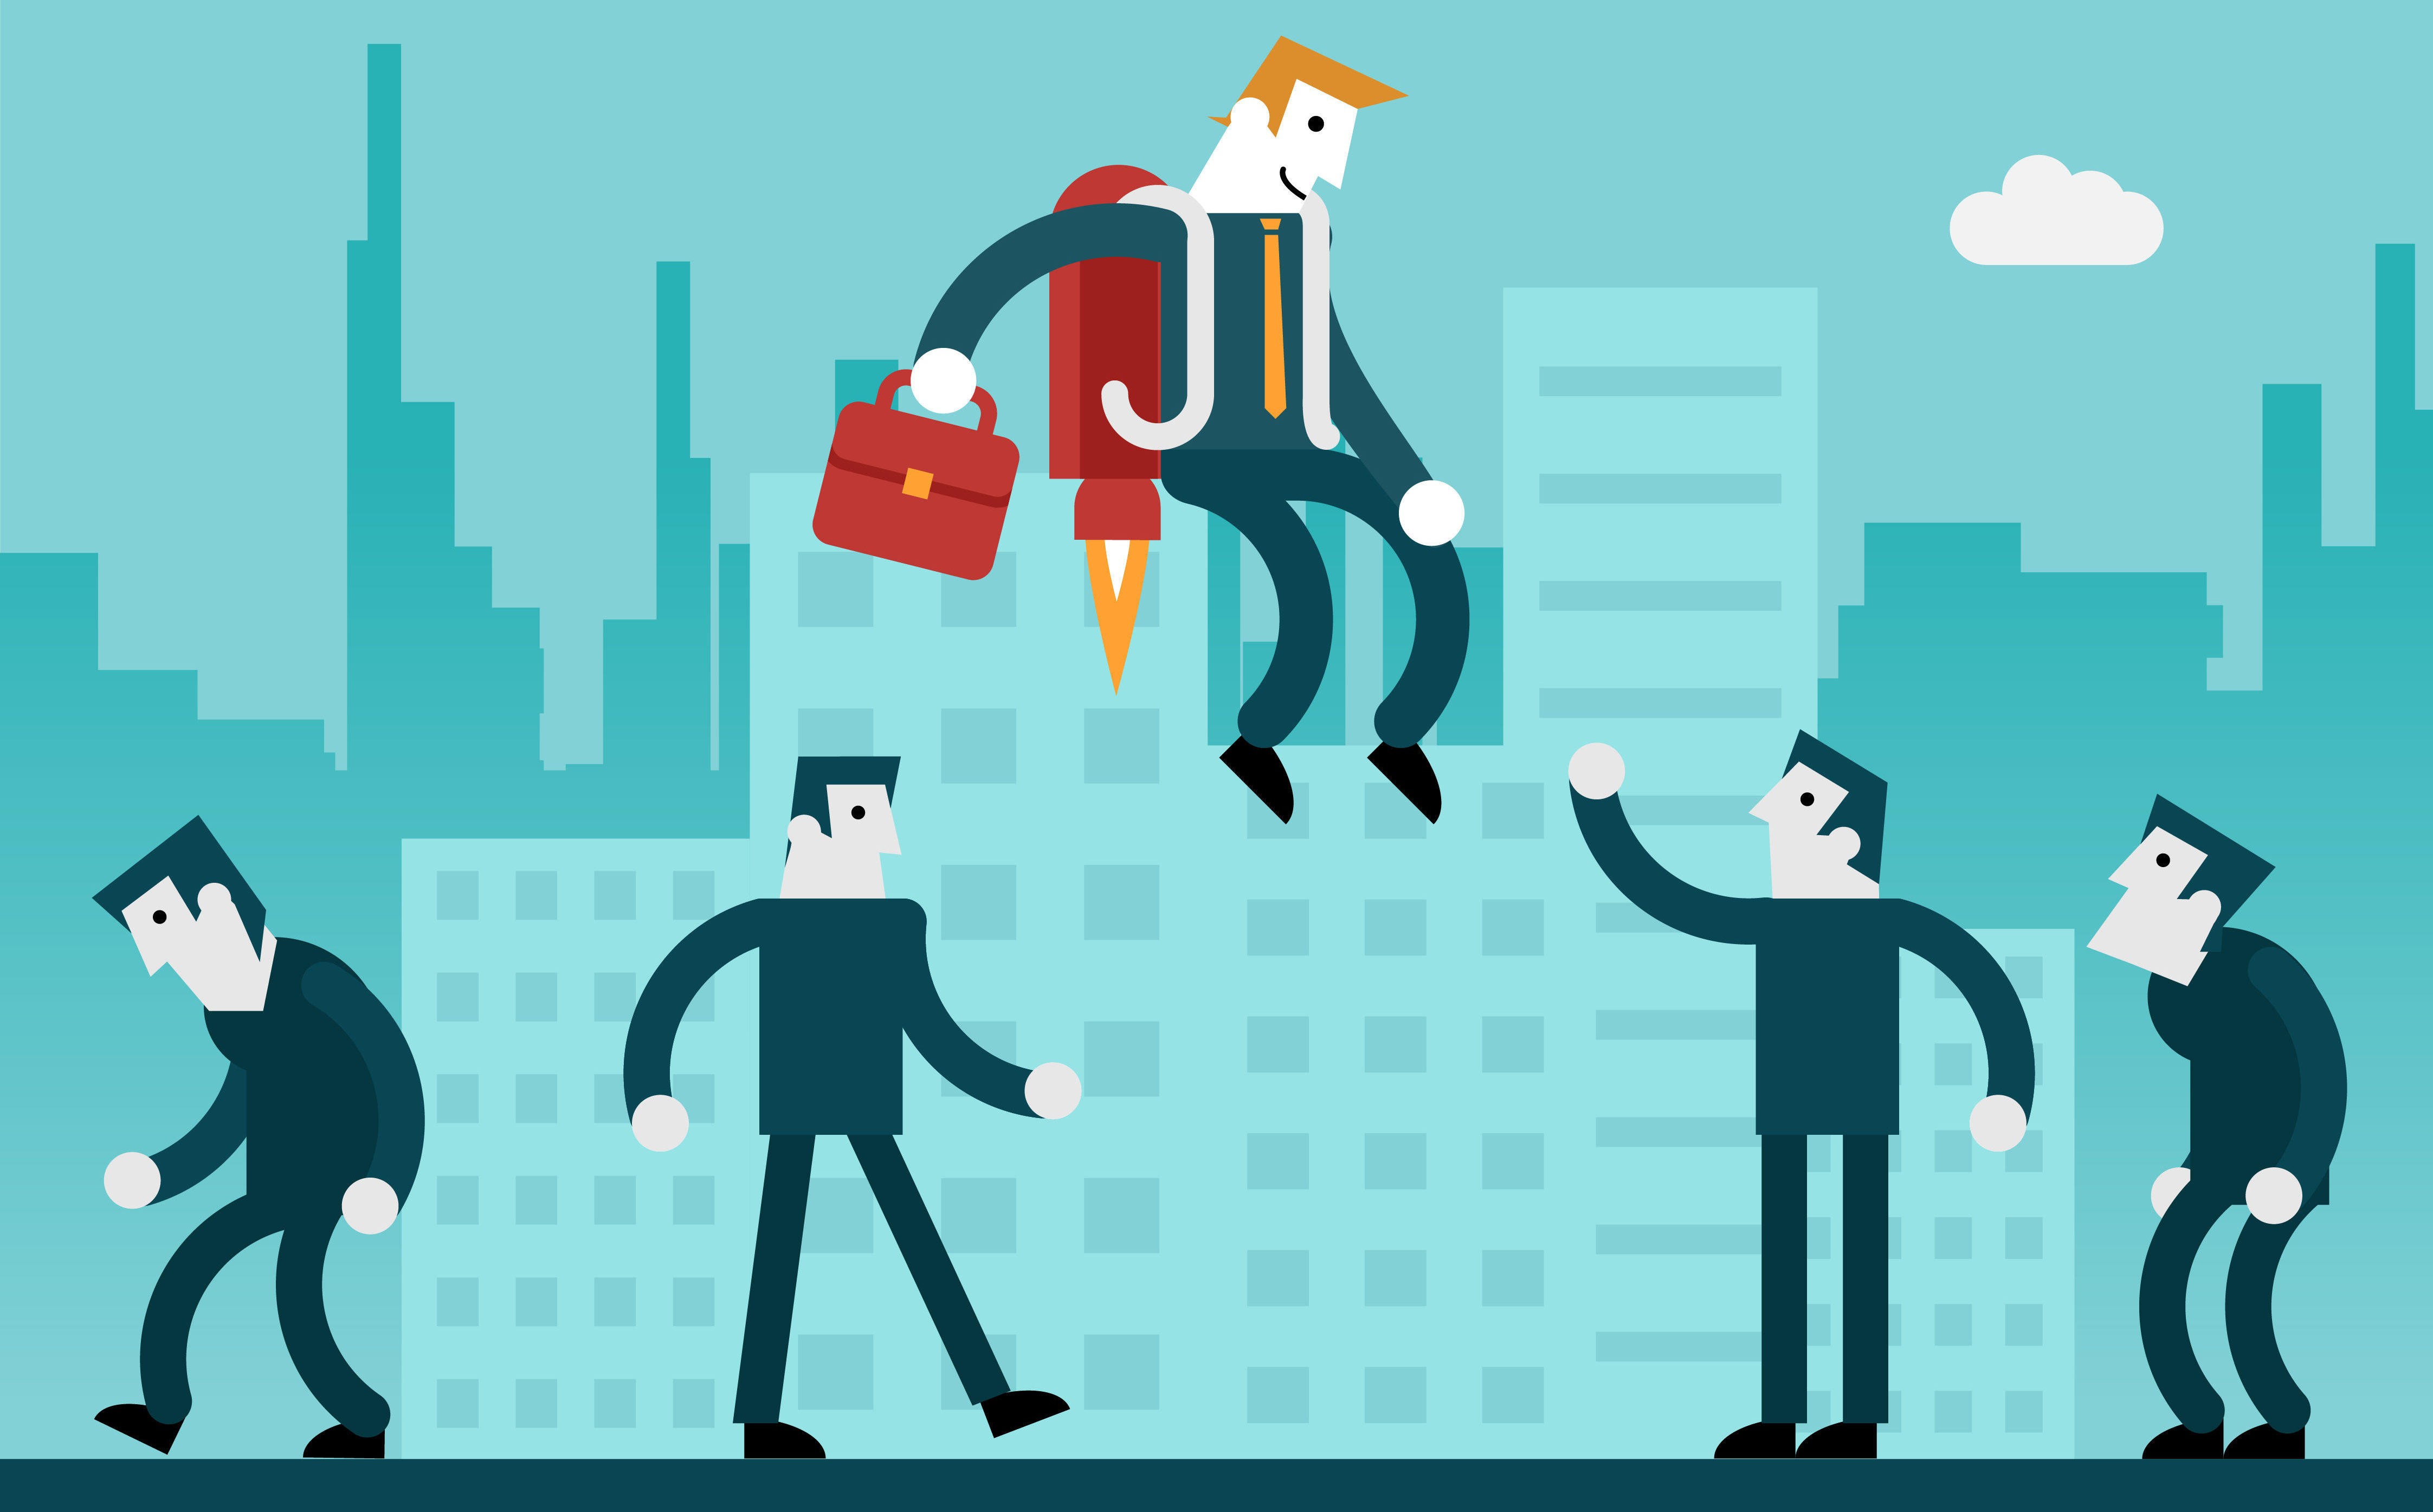 Illustration of businessman with jetpack rising about his peers.